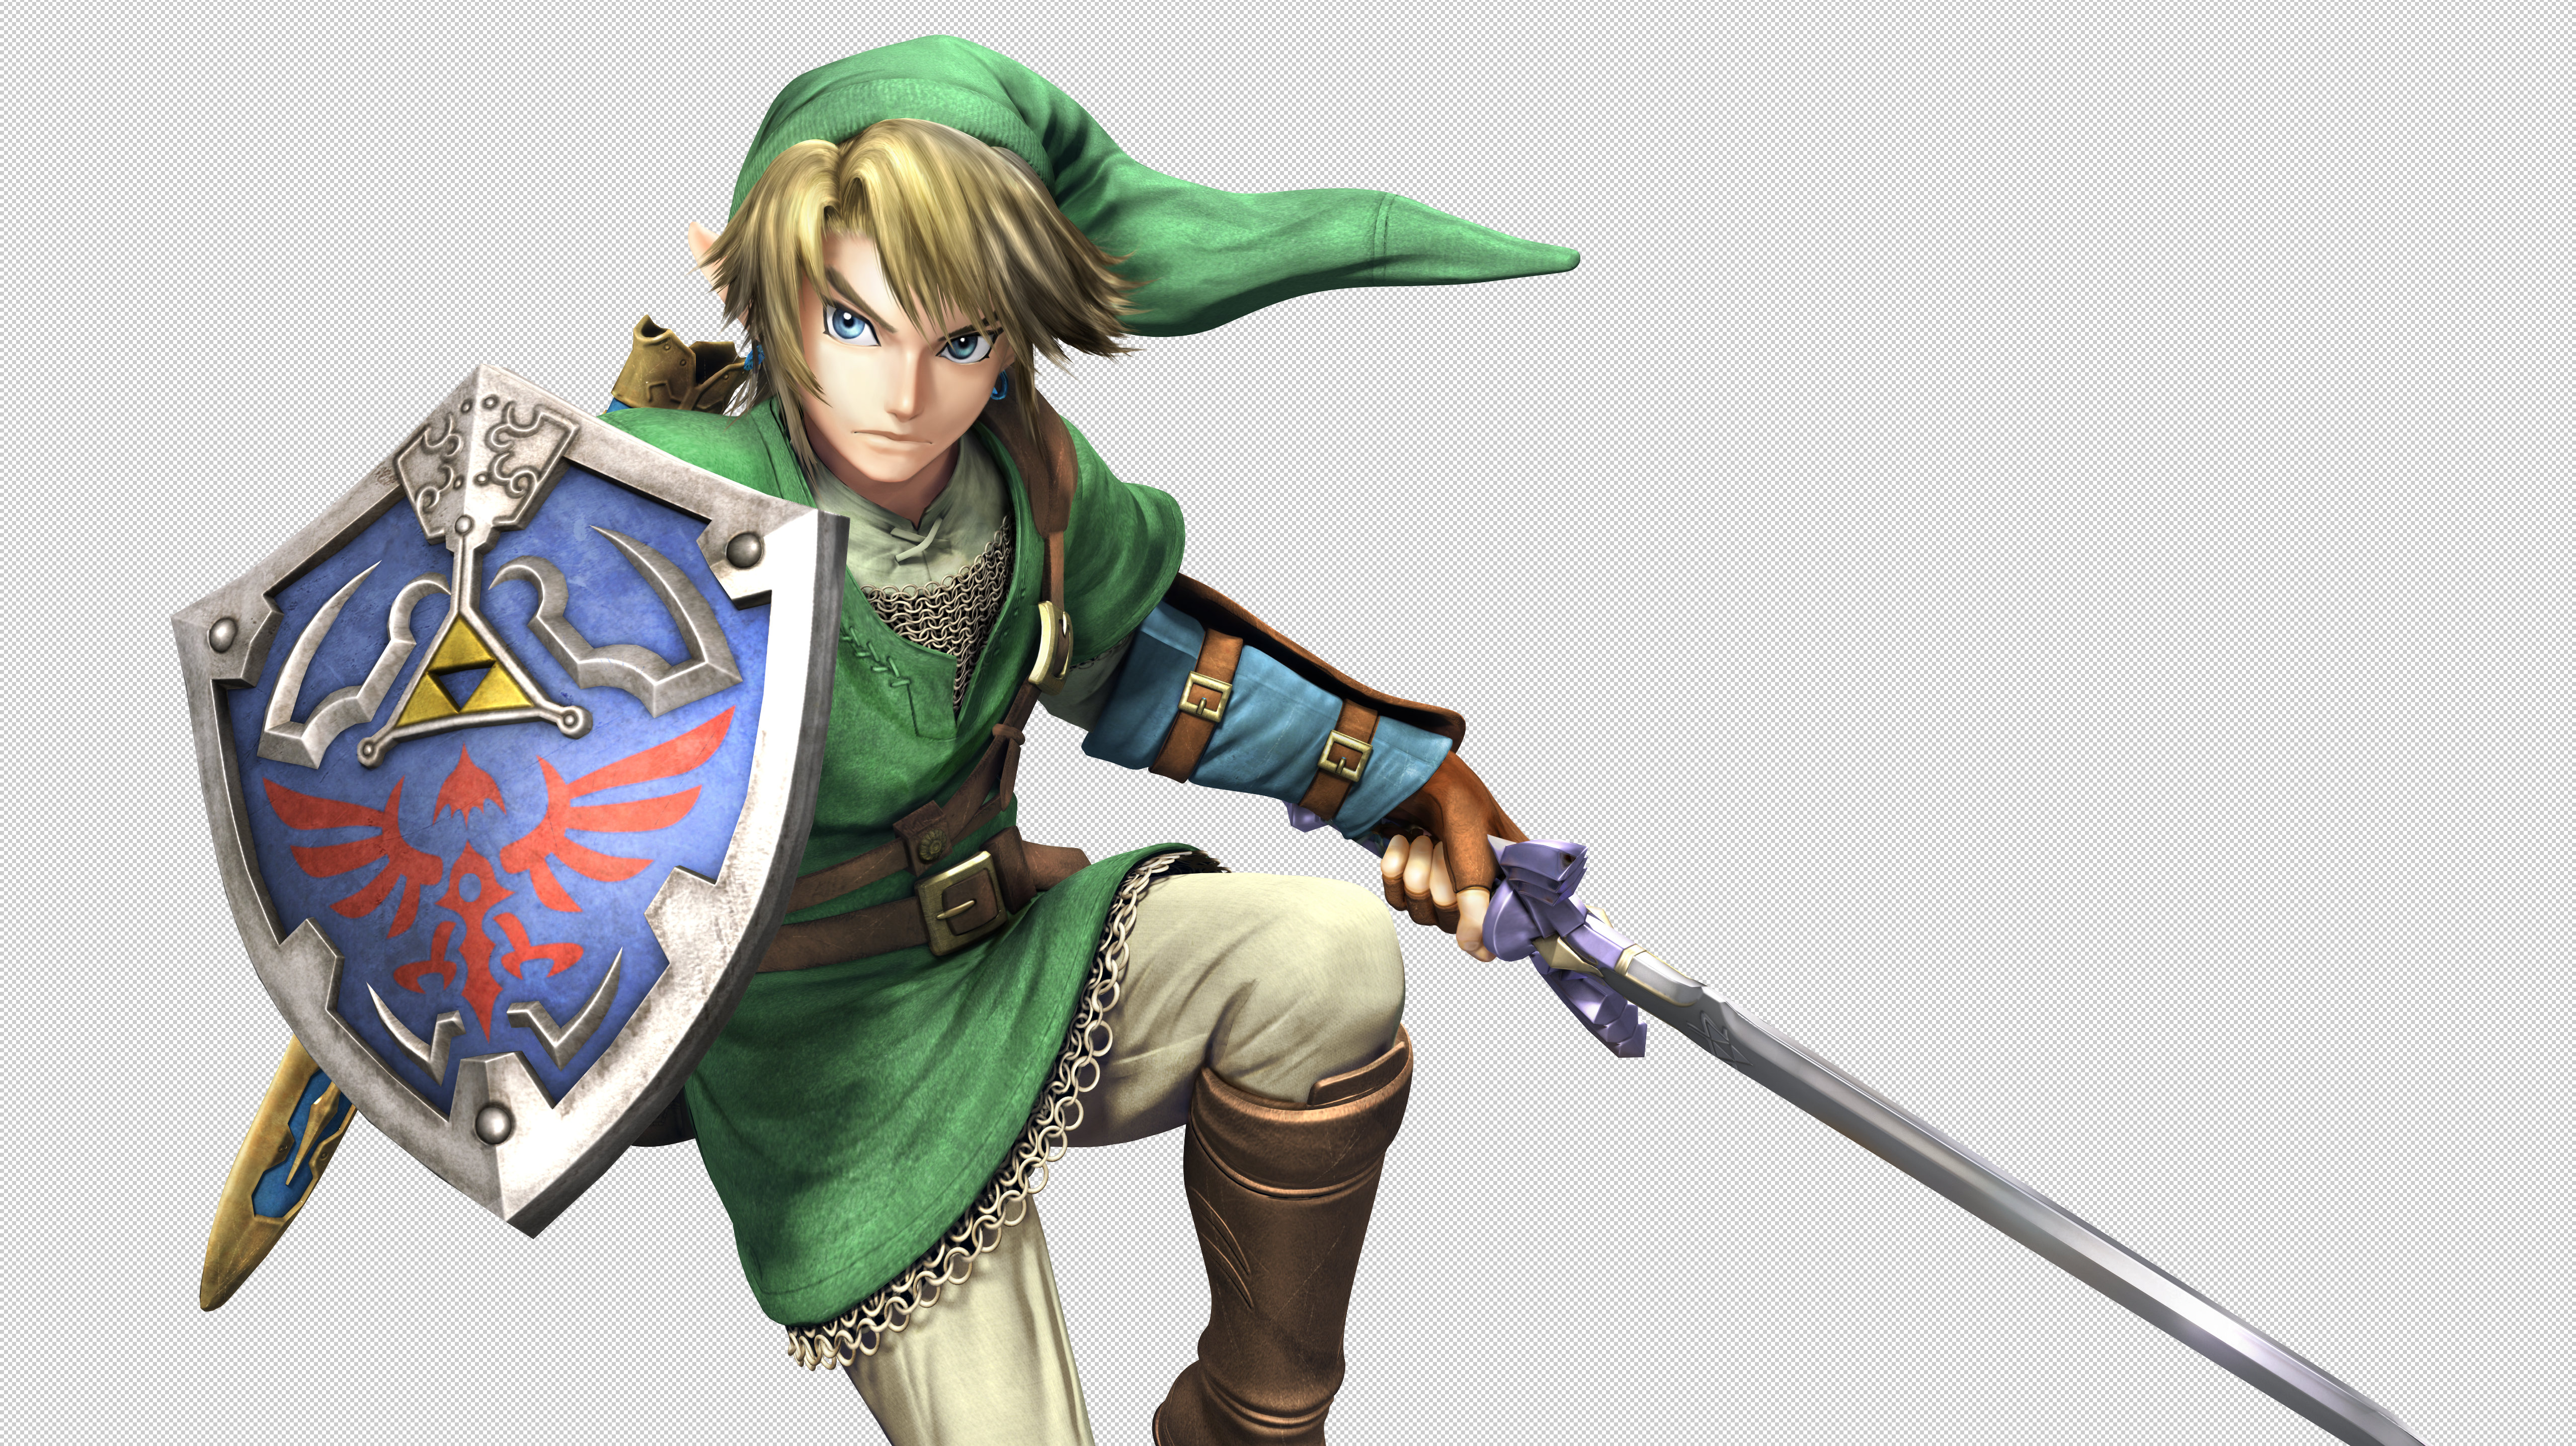 Infographic: 16 Facts About Nintendo's The Legend of Zelda